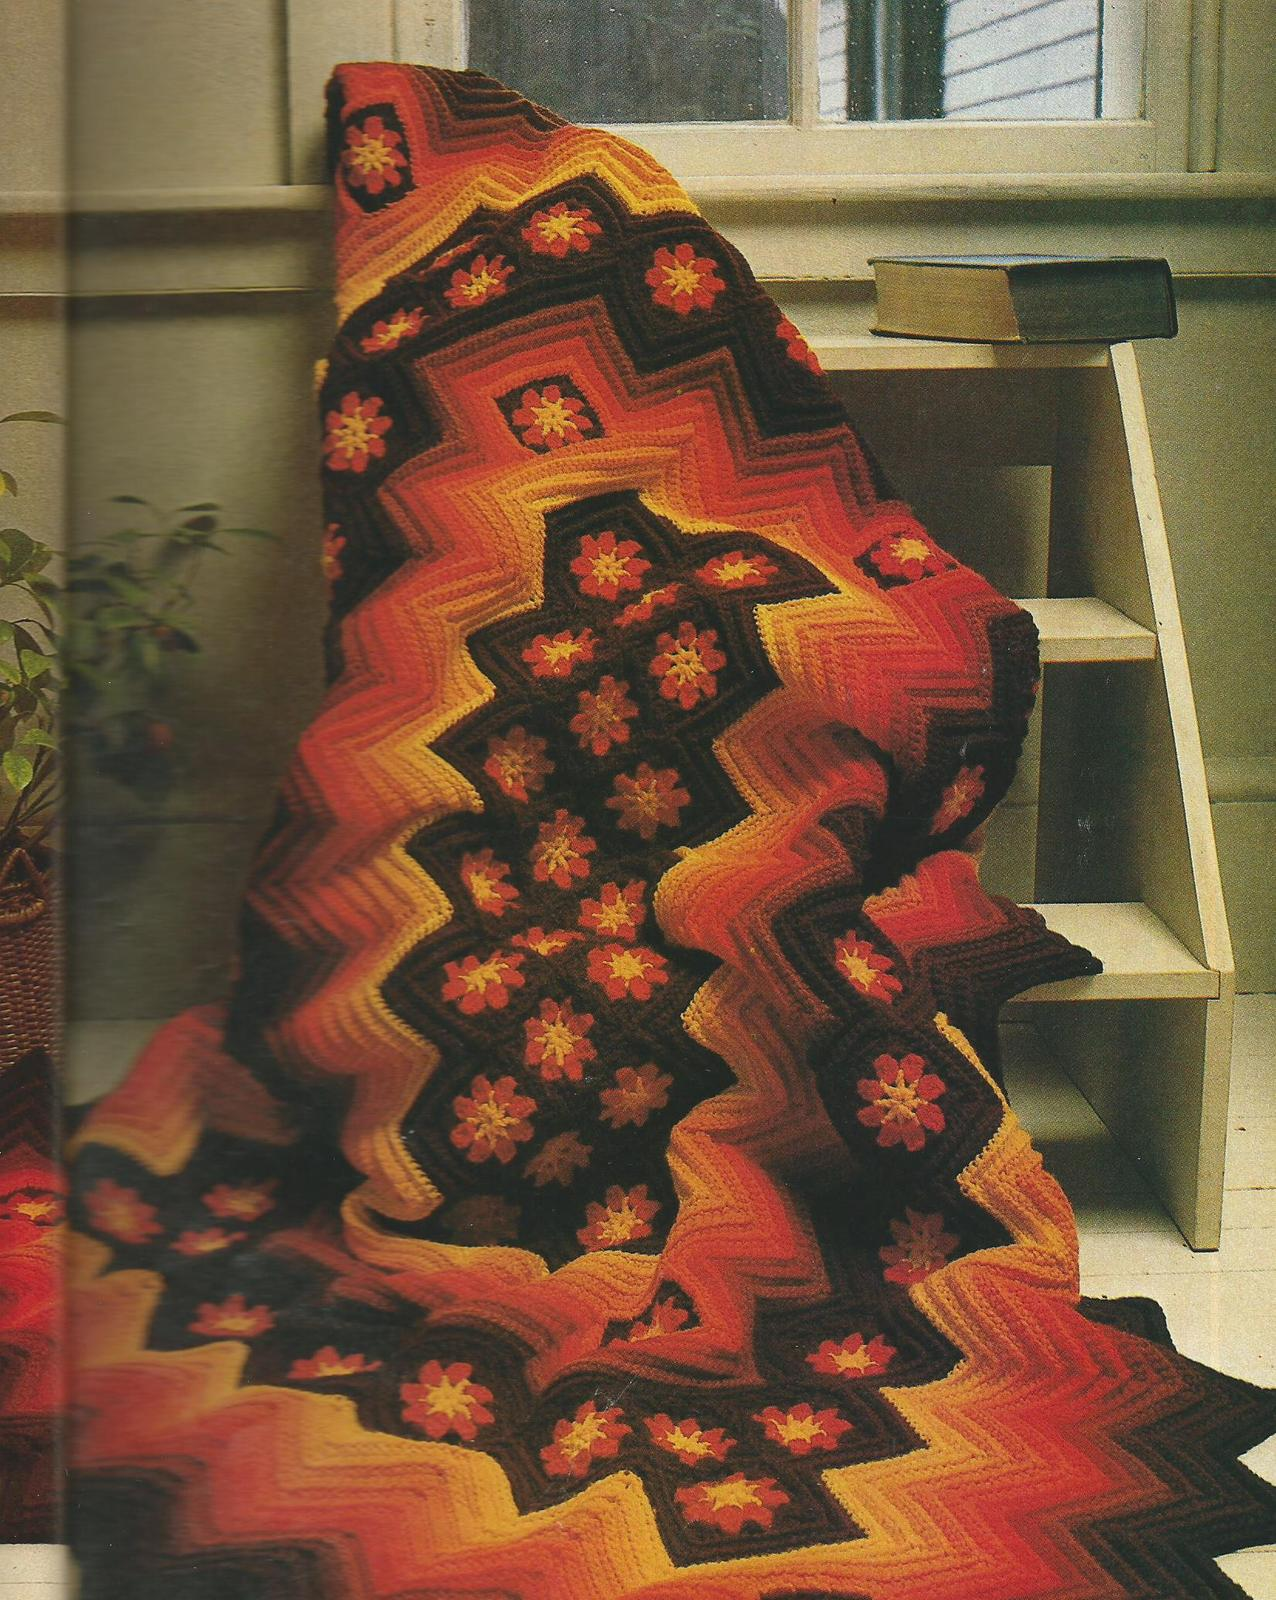 Super Book of Knit & Crochet Afghans Magazine~Indian Pottery Afghan~45+Patterns - $49.99